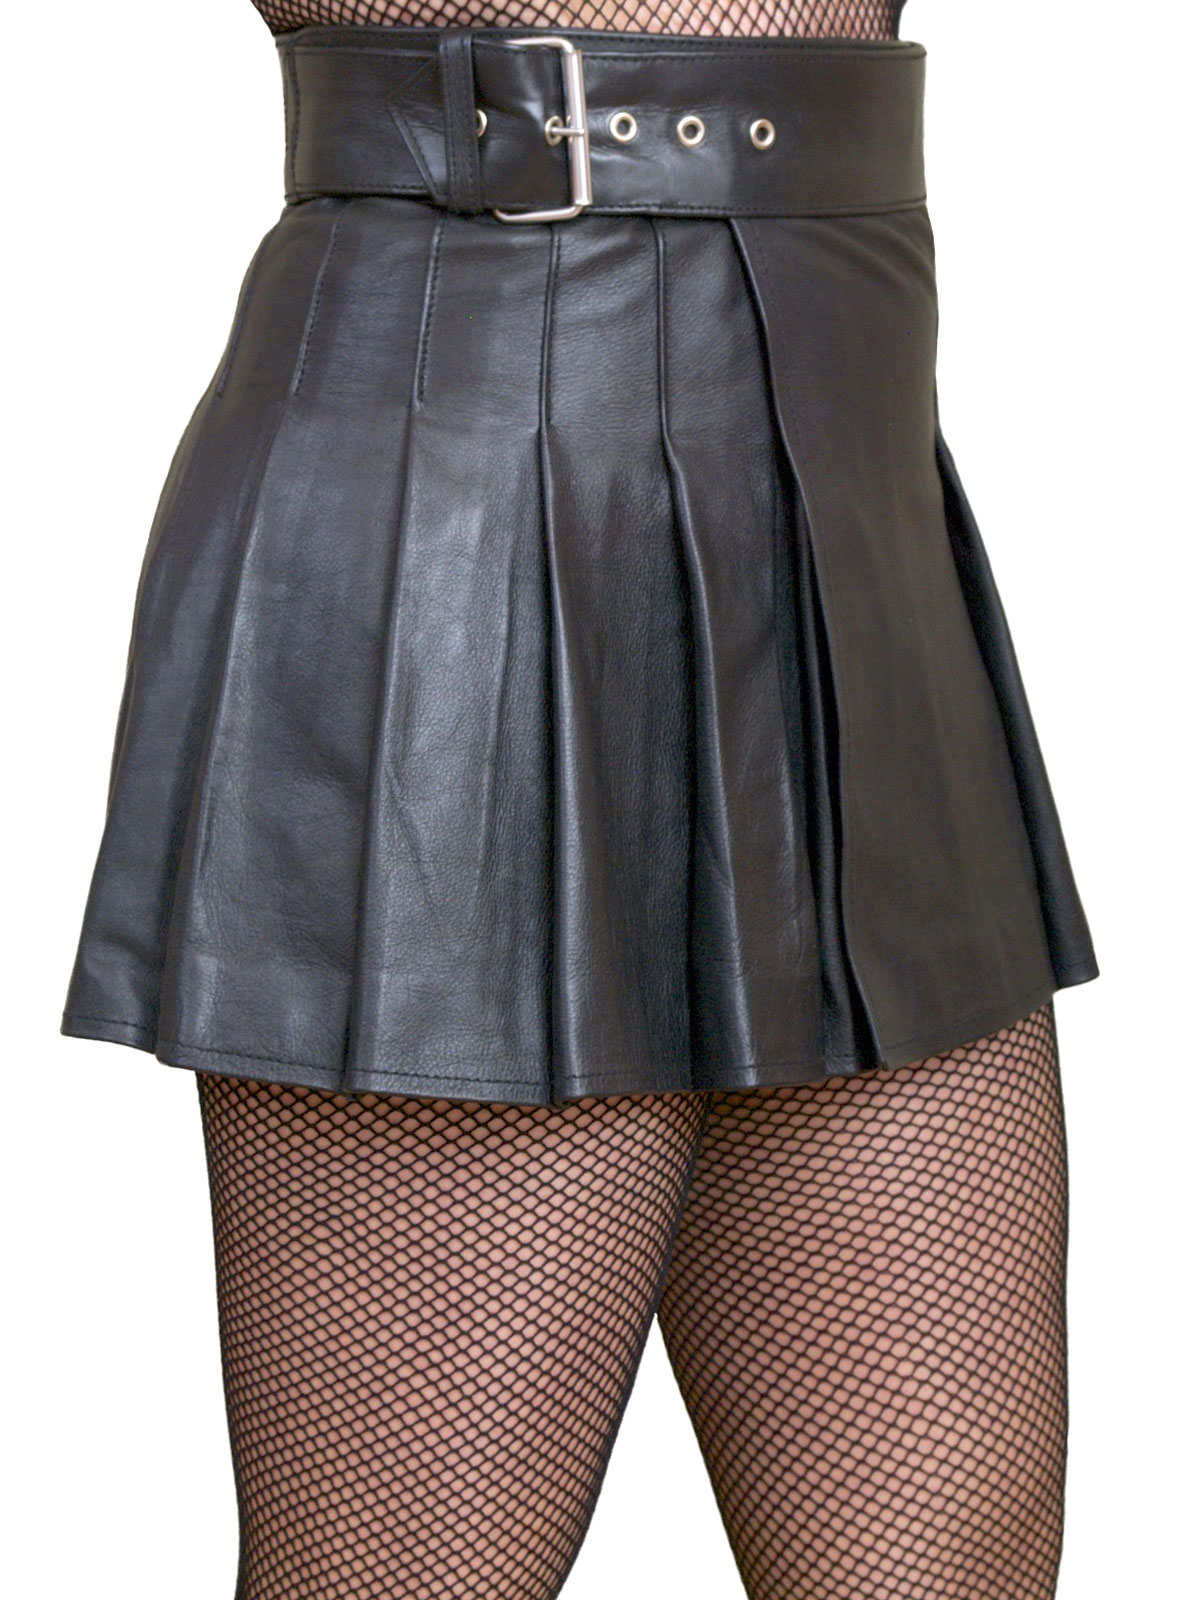 Black Leather Skirt Uk - Dress Ala